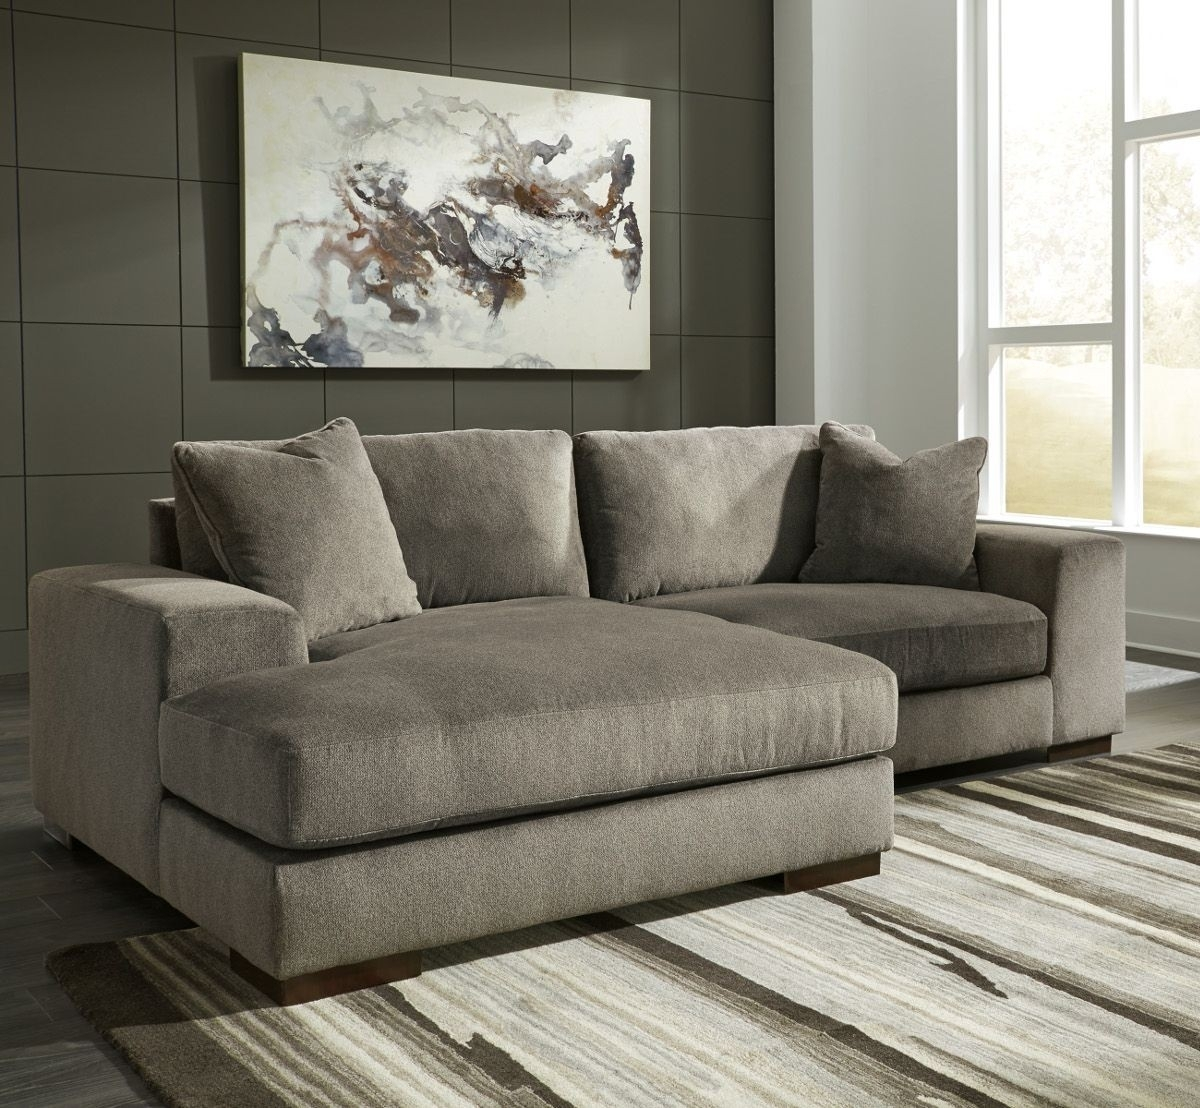 Ashley Furniture Manzani 2 Piece Sectional With Laf Chaise In For Aspen 2 Piece Sectionals With Laf Chaise (View 8 of 25)